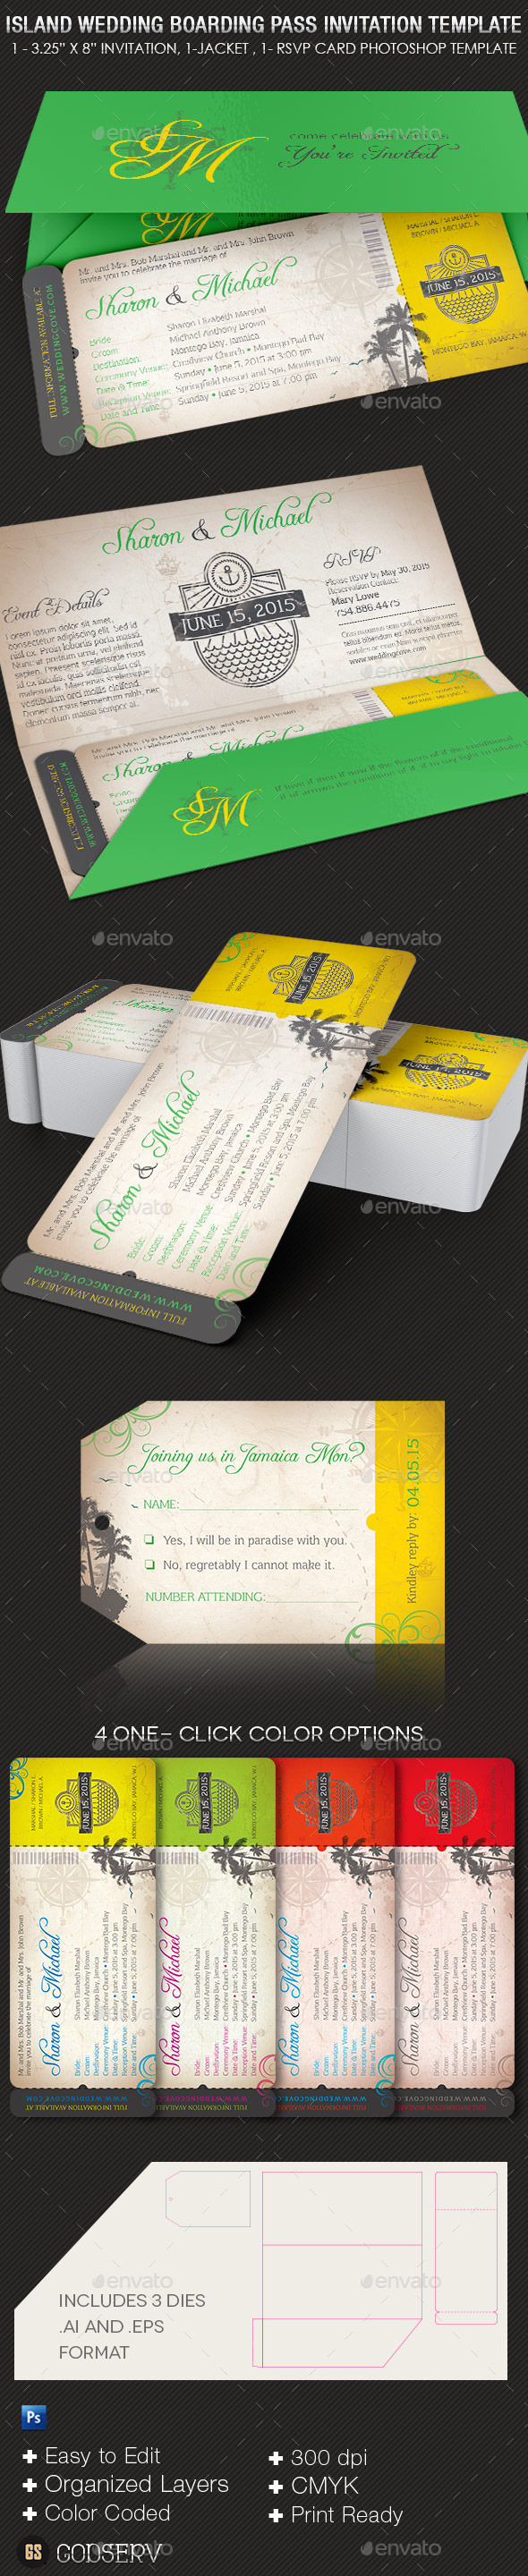 Island Wedding Boarding Pass Invitation Template